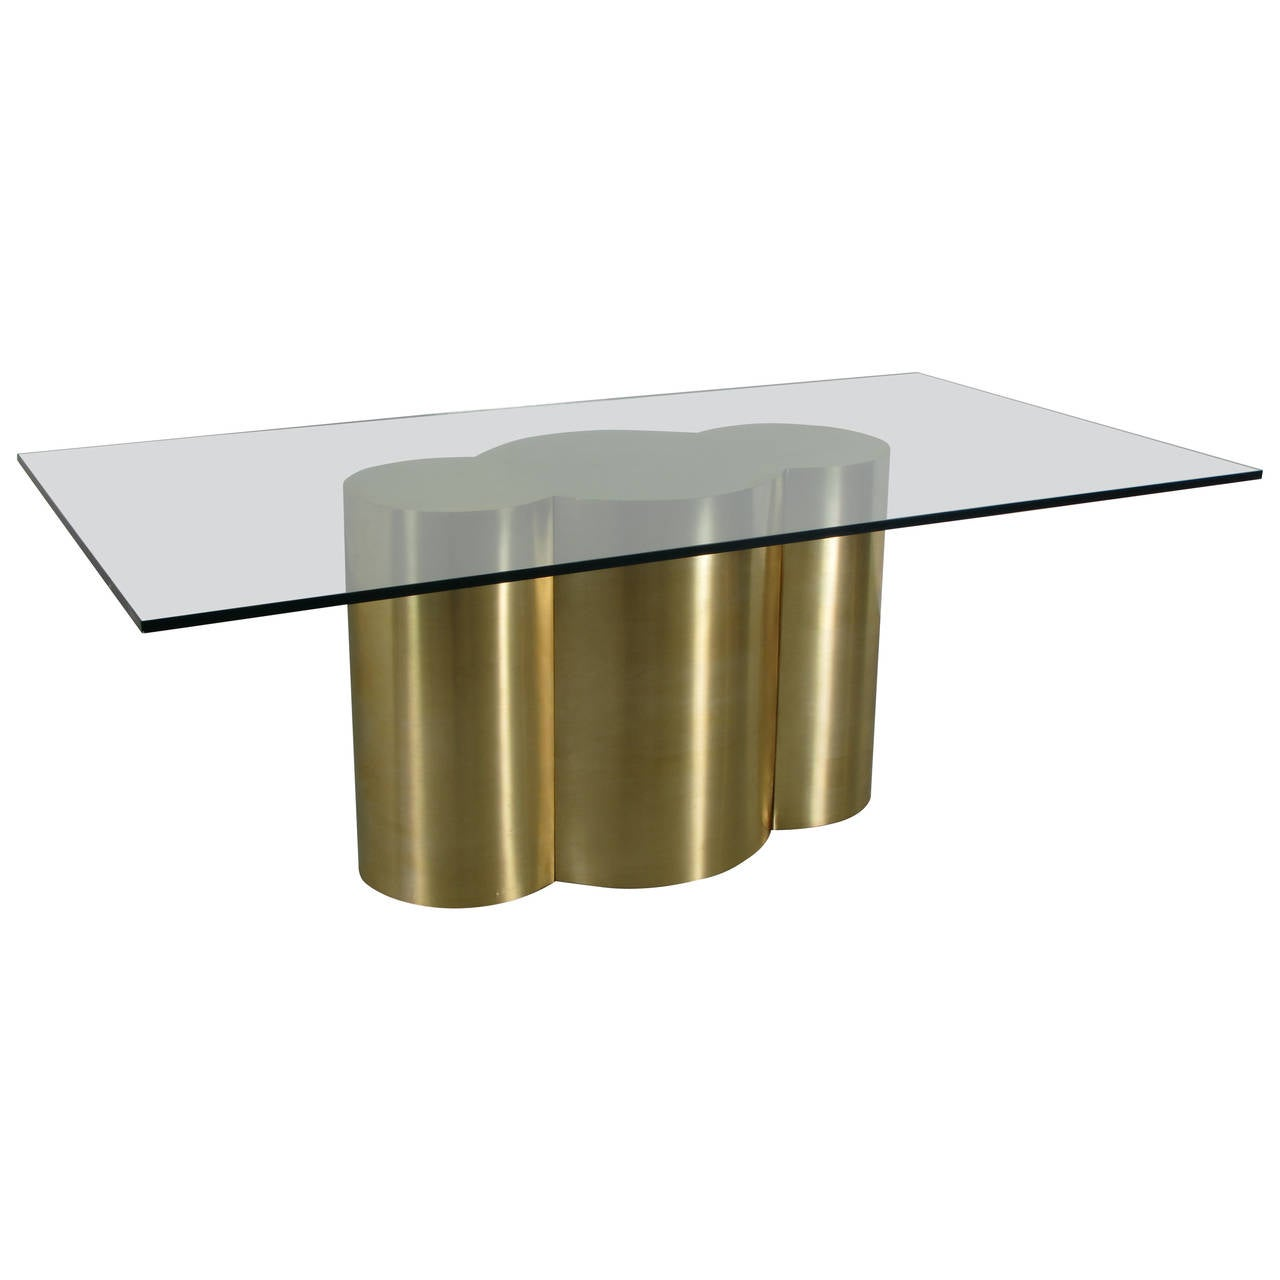 custom quatrefoil dining table base in polished brassrefine